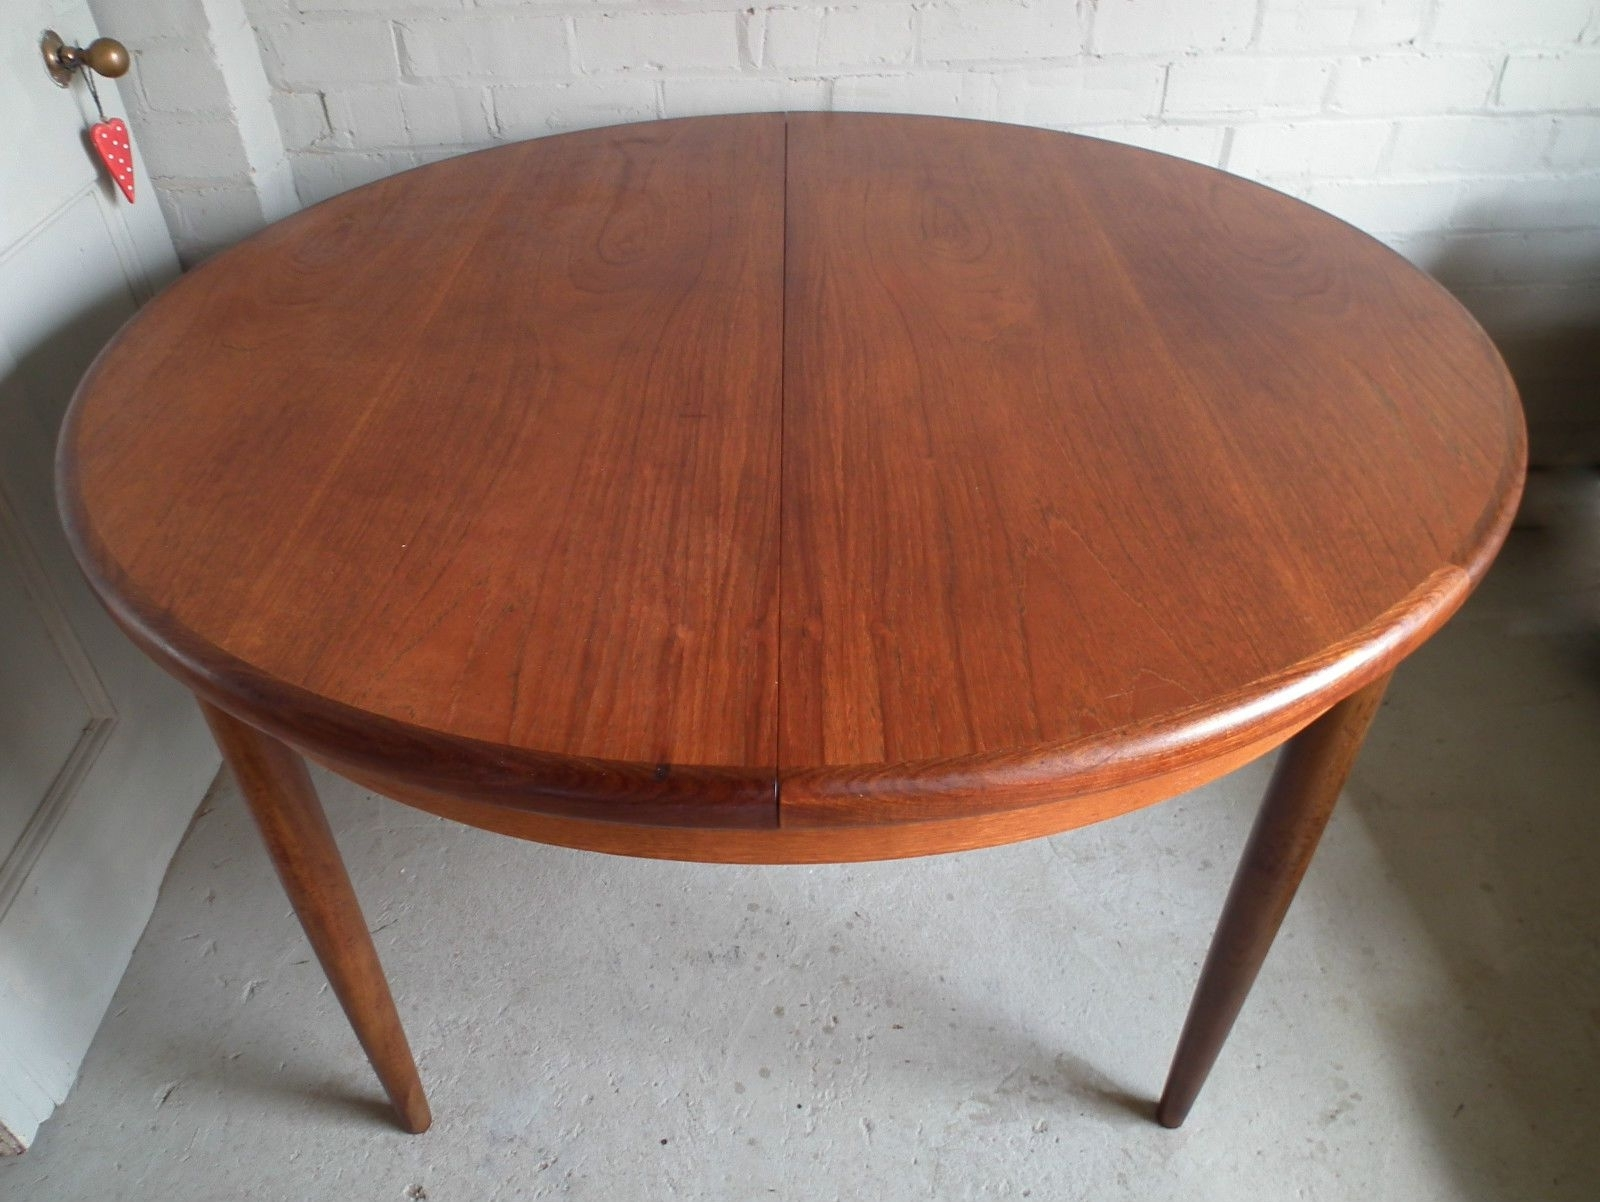 Popular Retro Extending Dining Tables Intended For Vintage Retro Teak G Plan Fresco Round Extending Dining Table 60S (View 15 of 25)